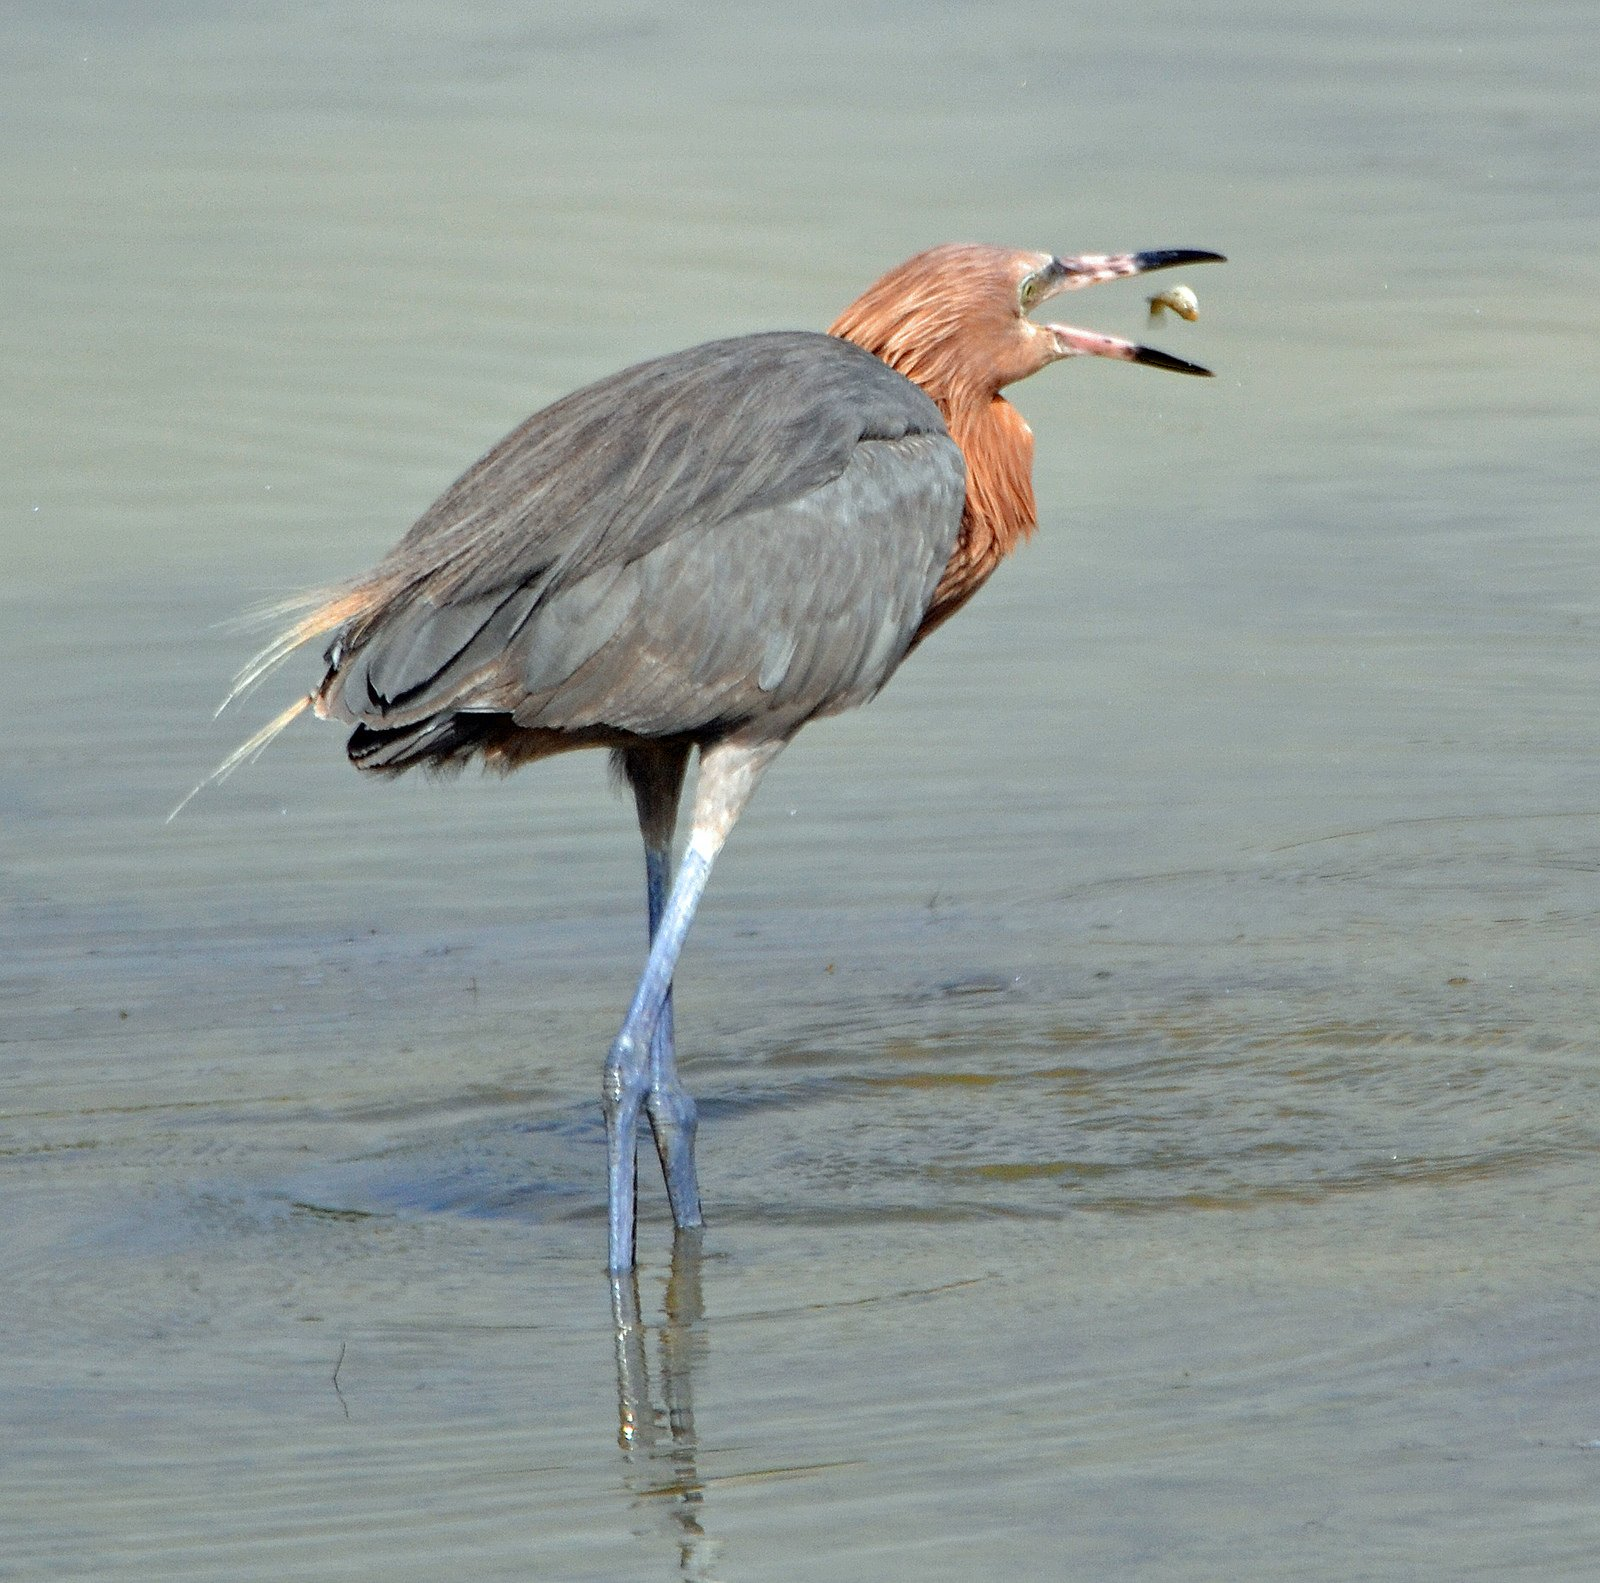 Reddish Egret (Egretta rufescens) by Michael Good